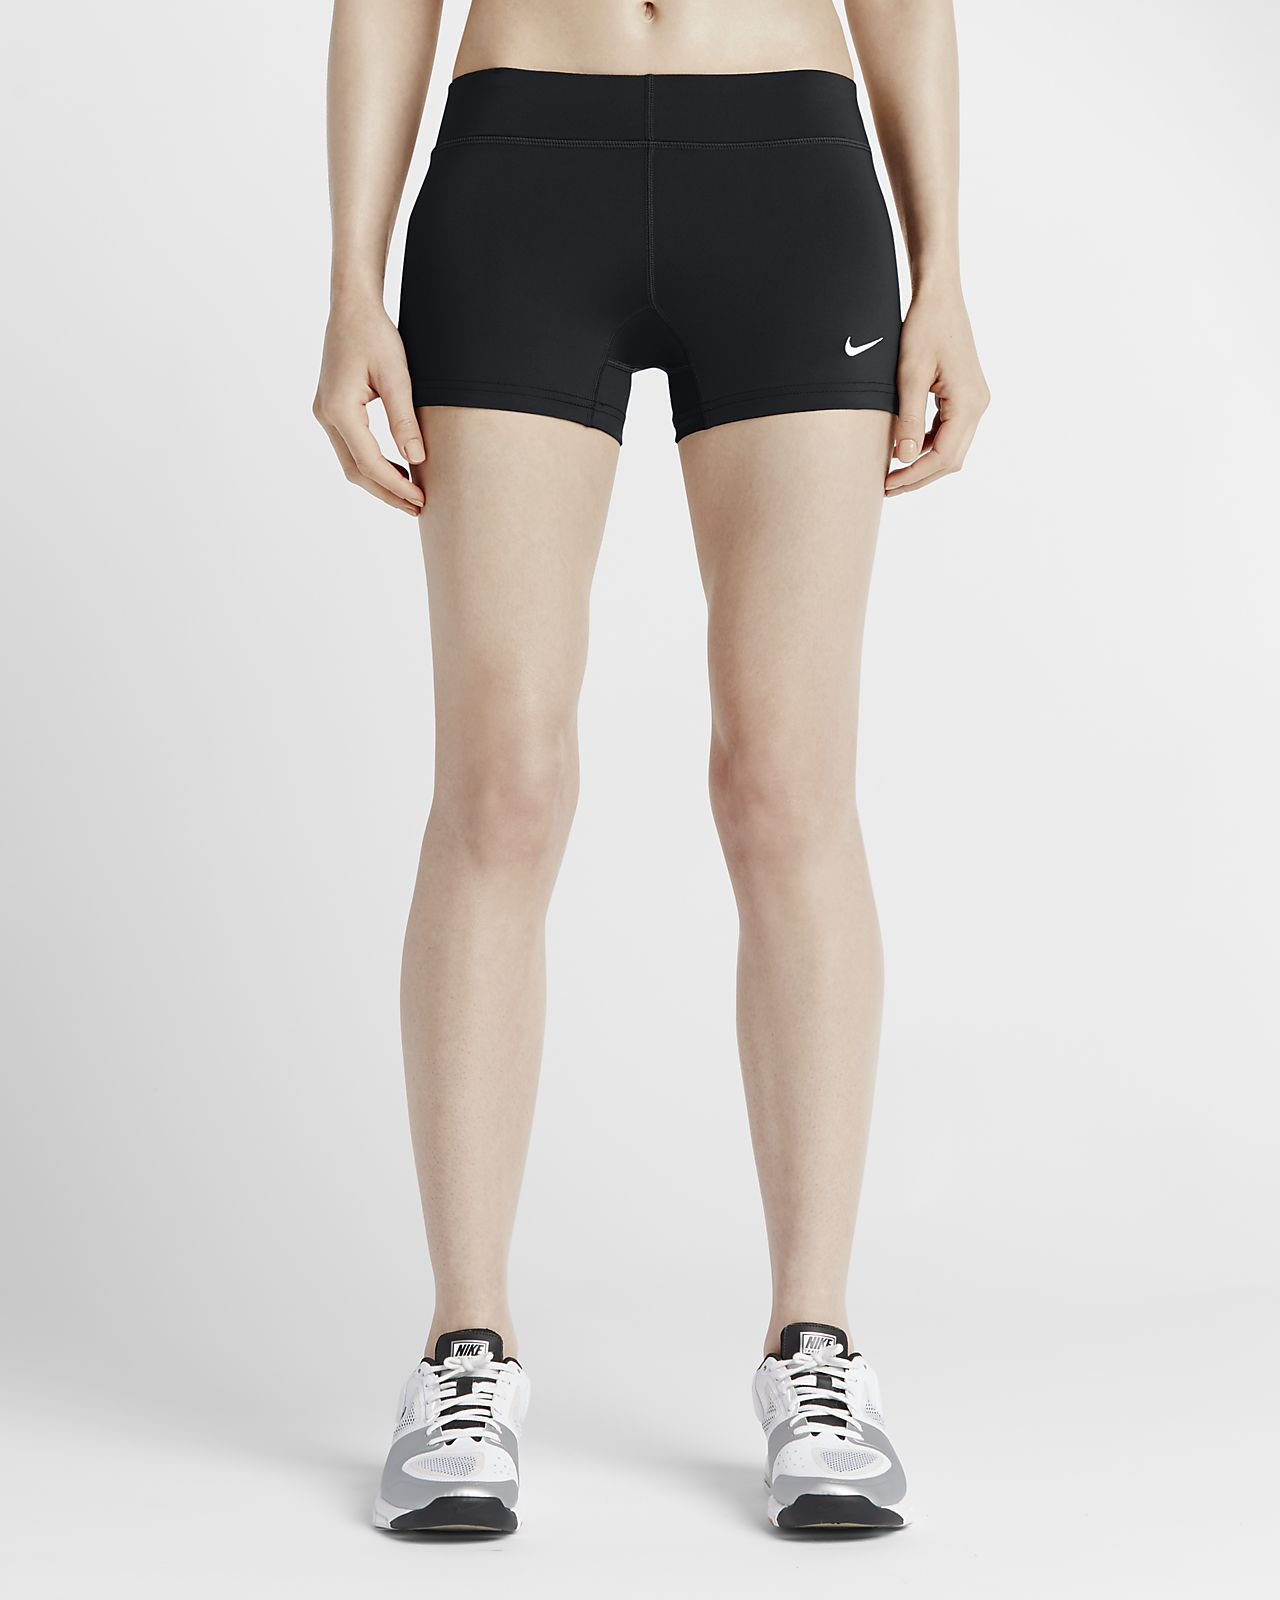 Nike Performance Women S Game Volleyball Shorts Nike Com In 2020 Volleyball Shorts Volleyball Women